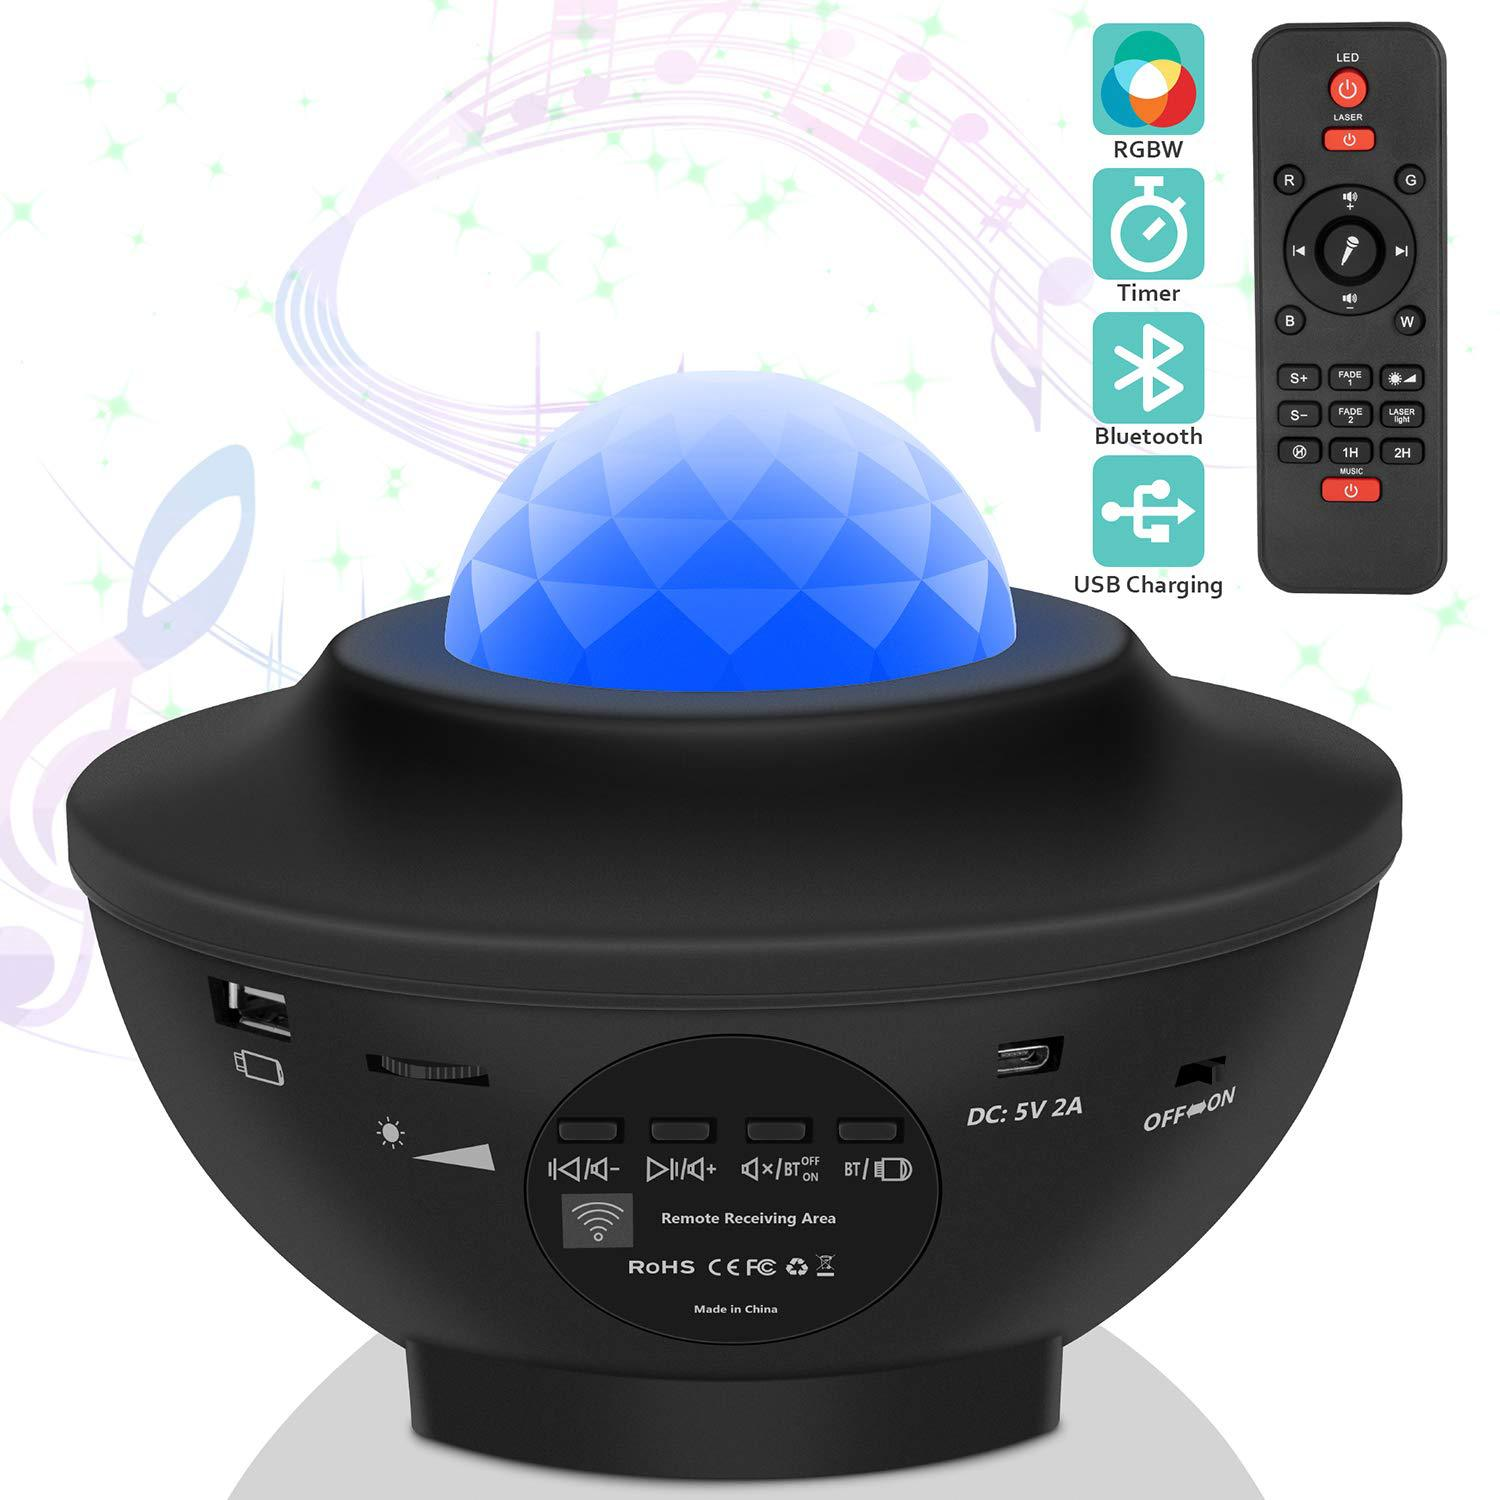 Star Projector Light, Ocean Wave Starry Projector LED Nebula Ambiance Light with 21 Lighting Modes, Bluetooth Speaker, Sound-Act